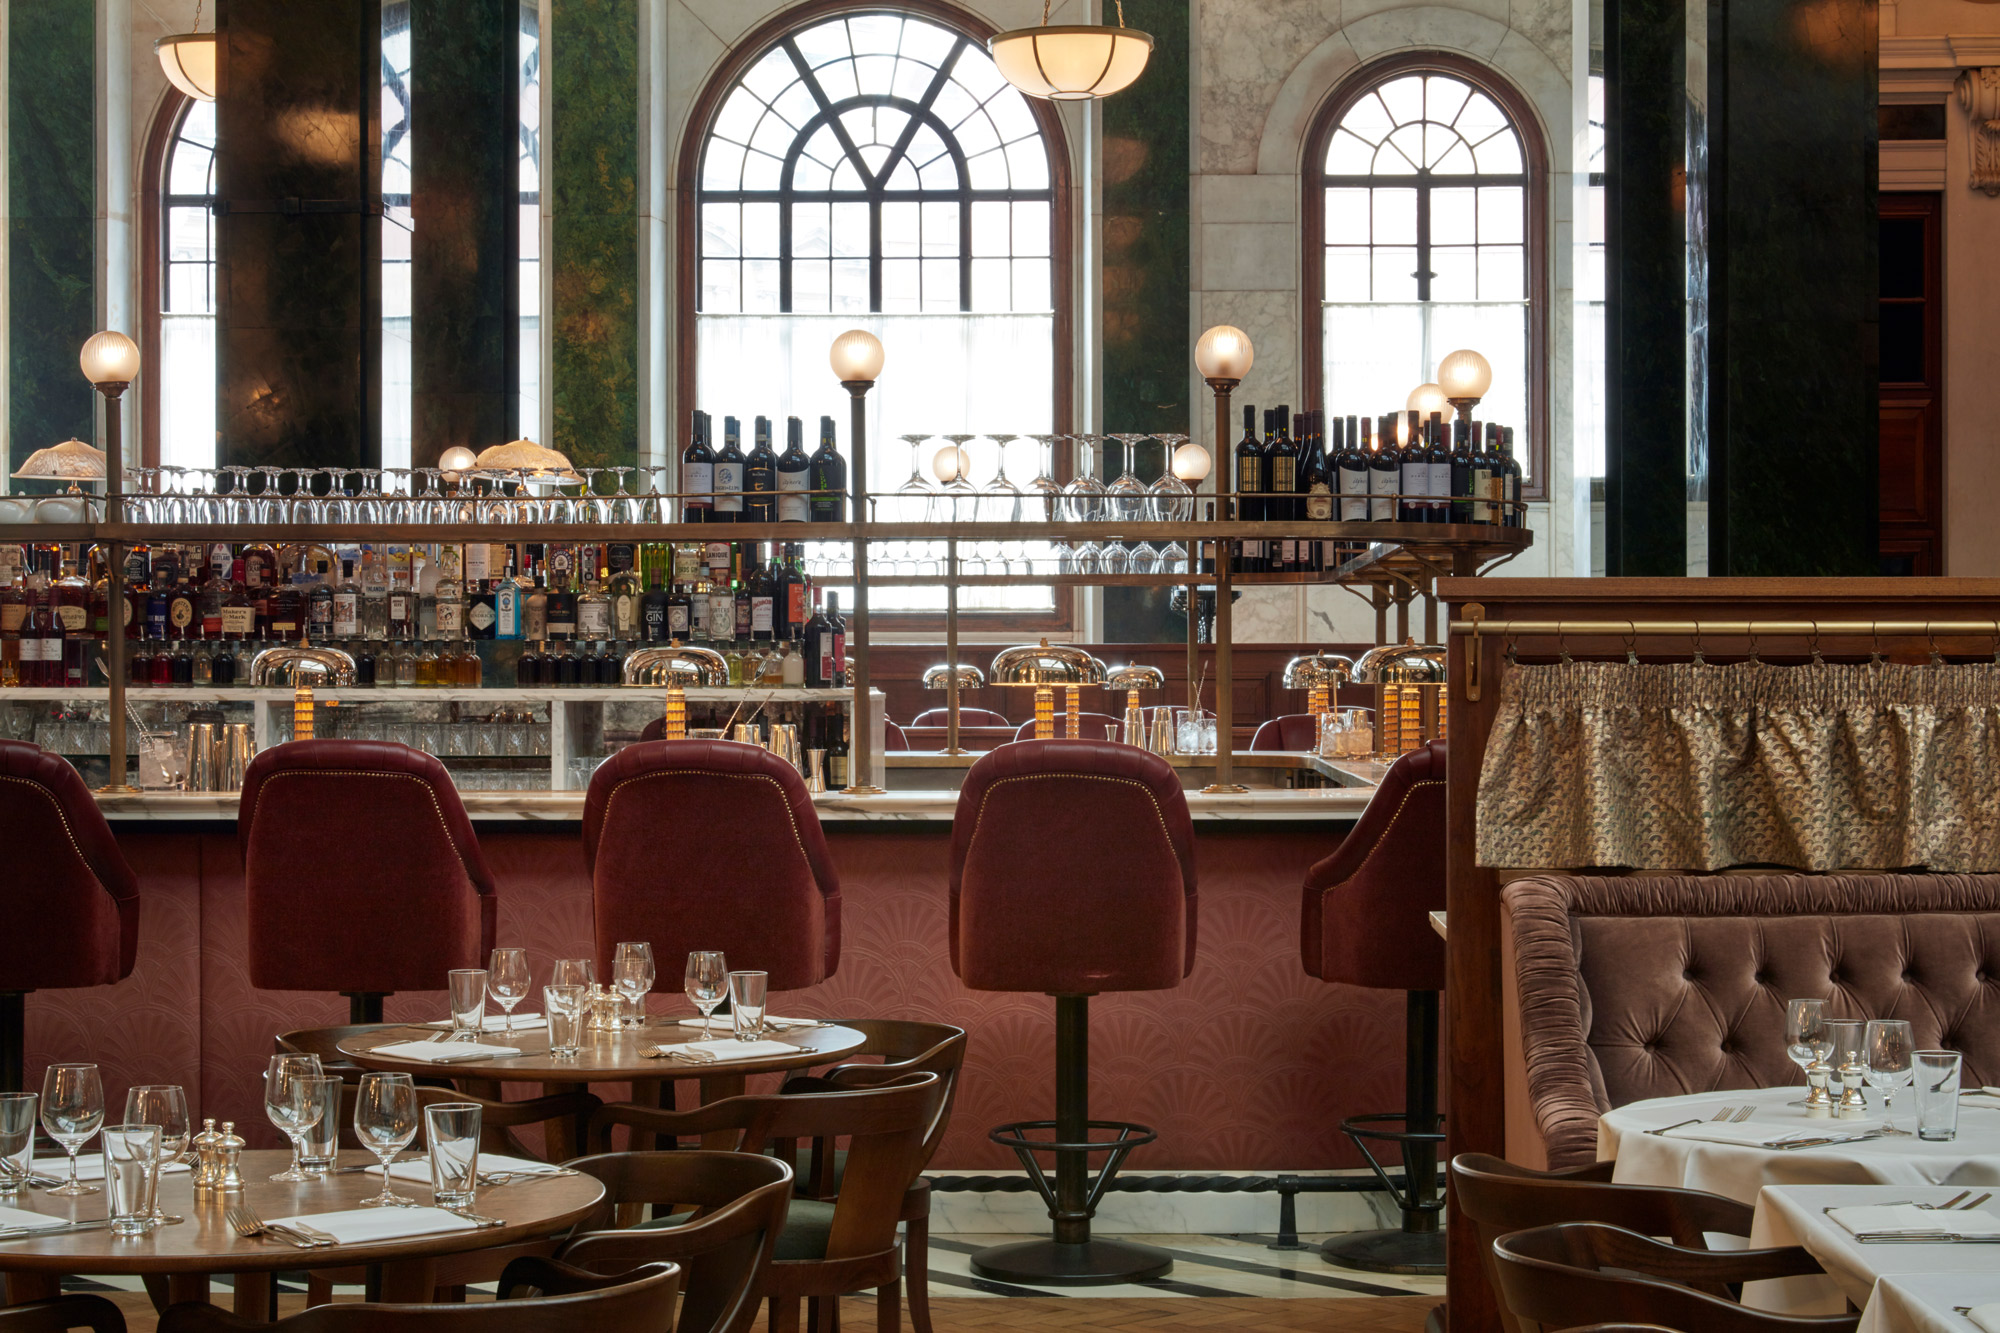 The Brit Awards 2019 brought music artists and winners to The Ned restaurants in Bank, City of London